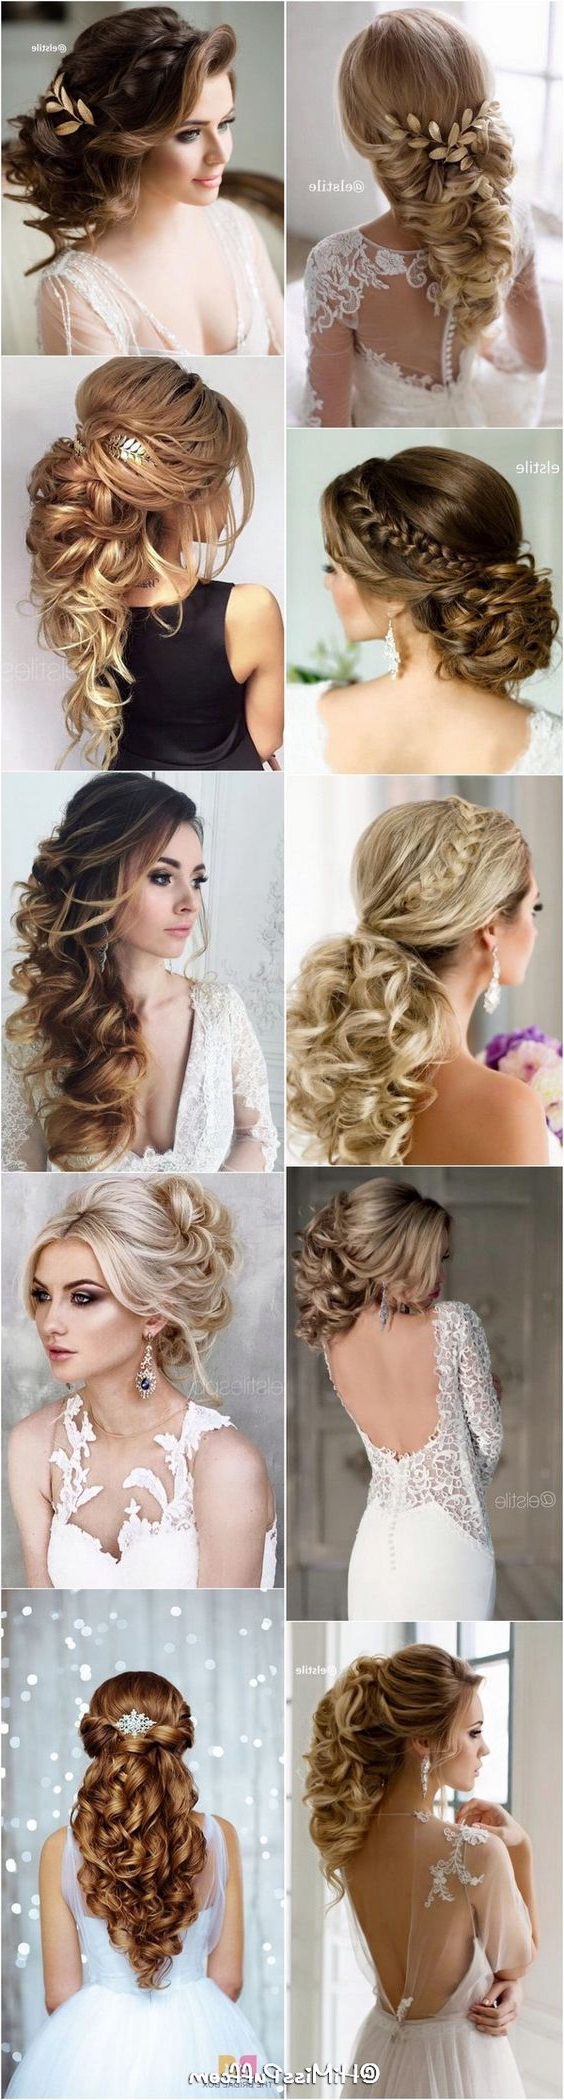 bridal-wedding-hairstyles-for-long-hair-that-will-inspire